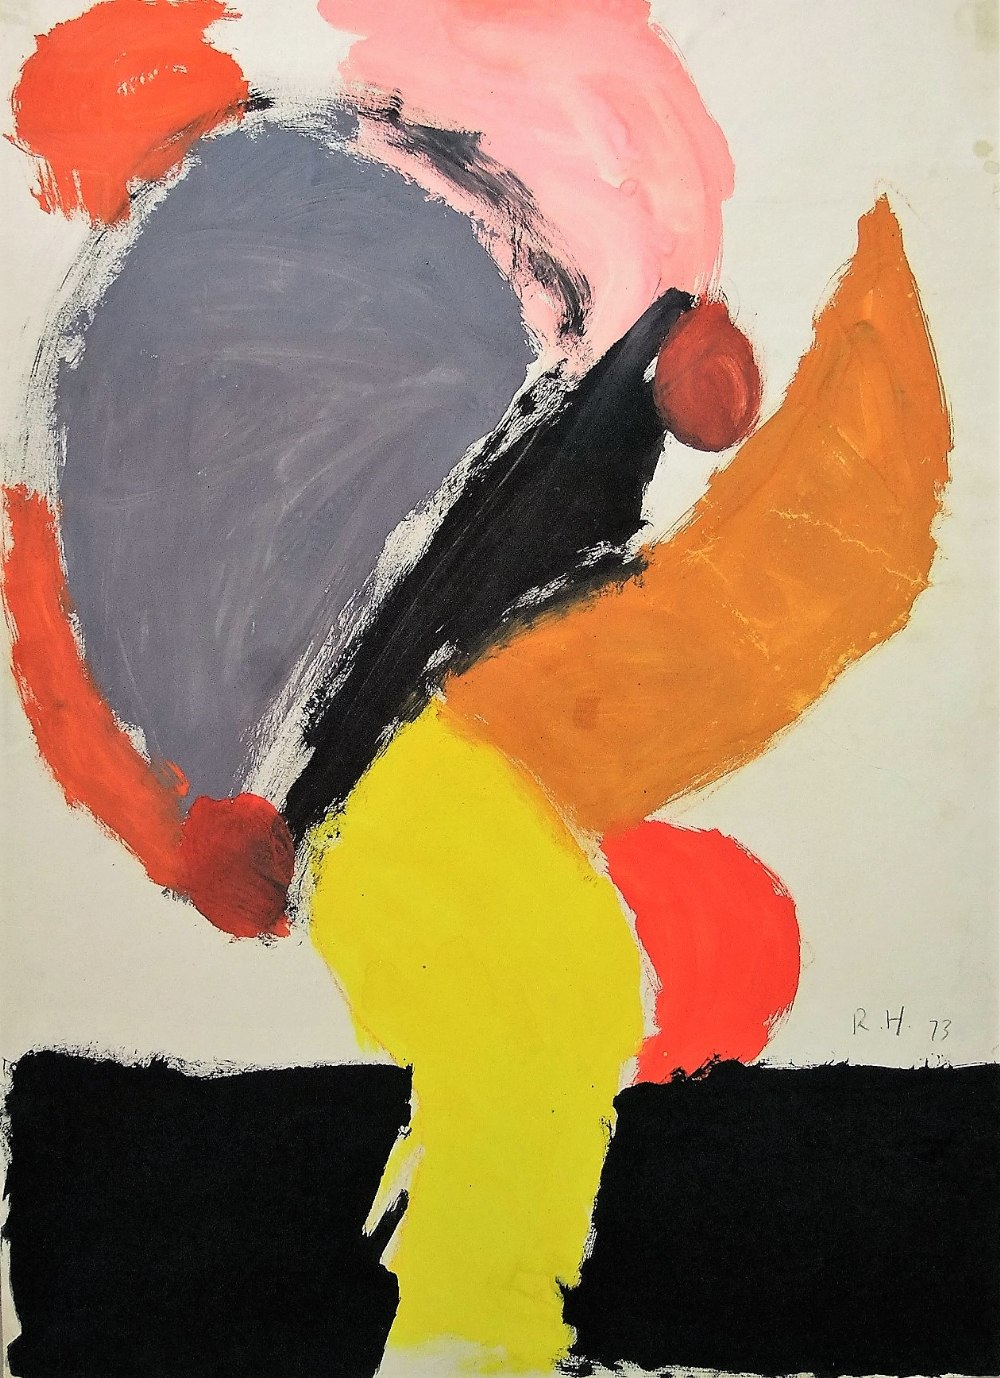 Lot 100 - Roger Hilton (1911-1975) - 'Untitled', abstract figural study, monogrammed RH and dated 1973,